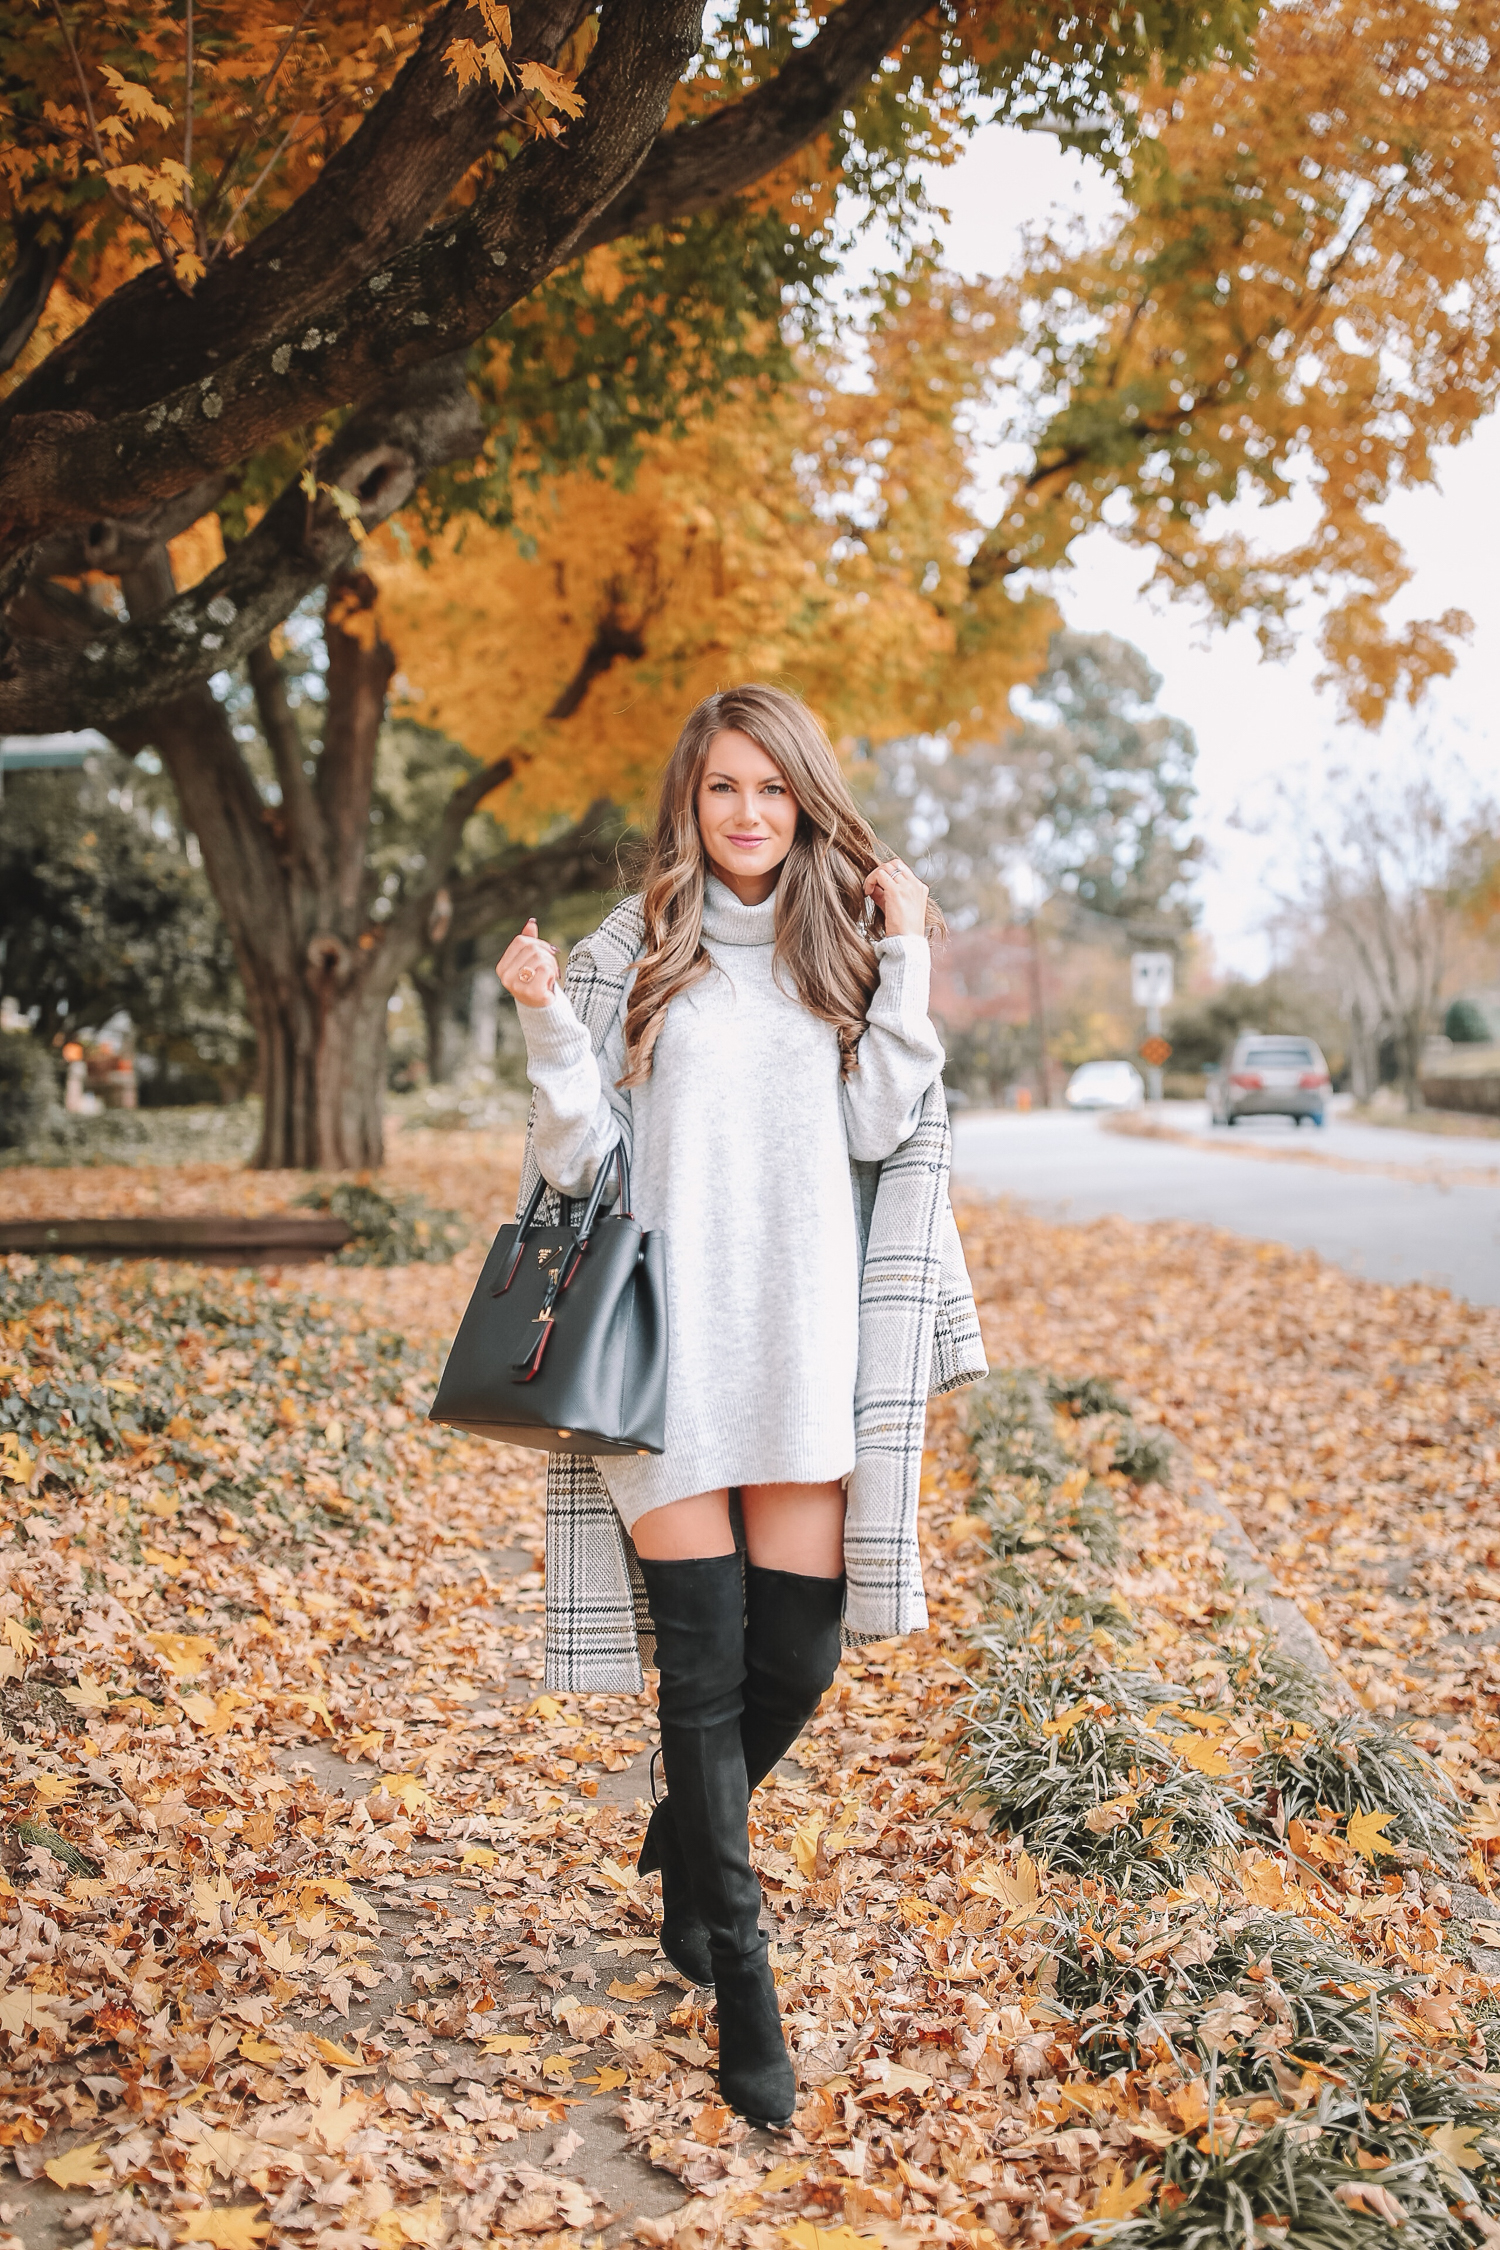 Mad for Plaid – Southern Curls & Pearls